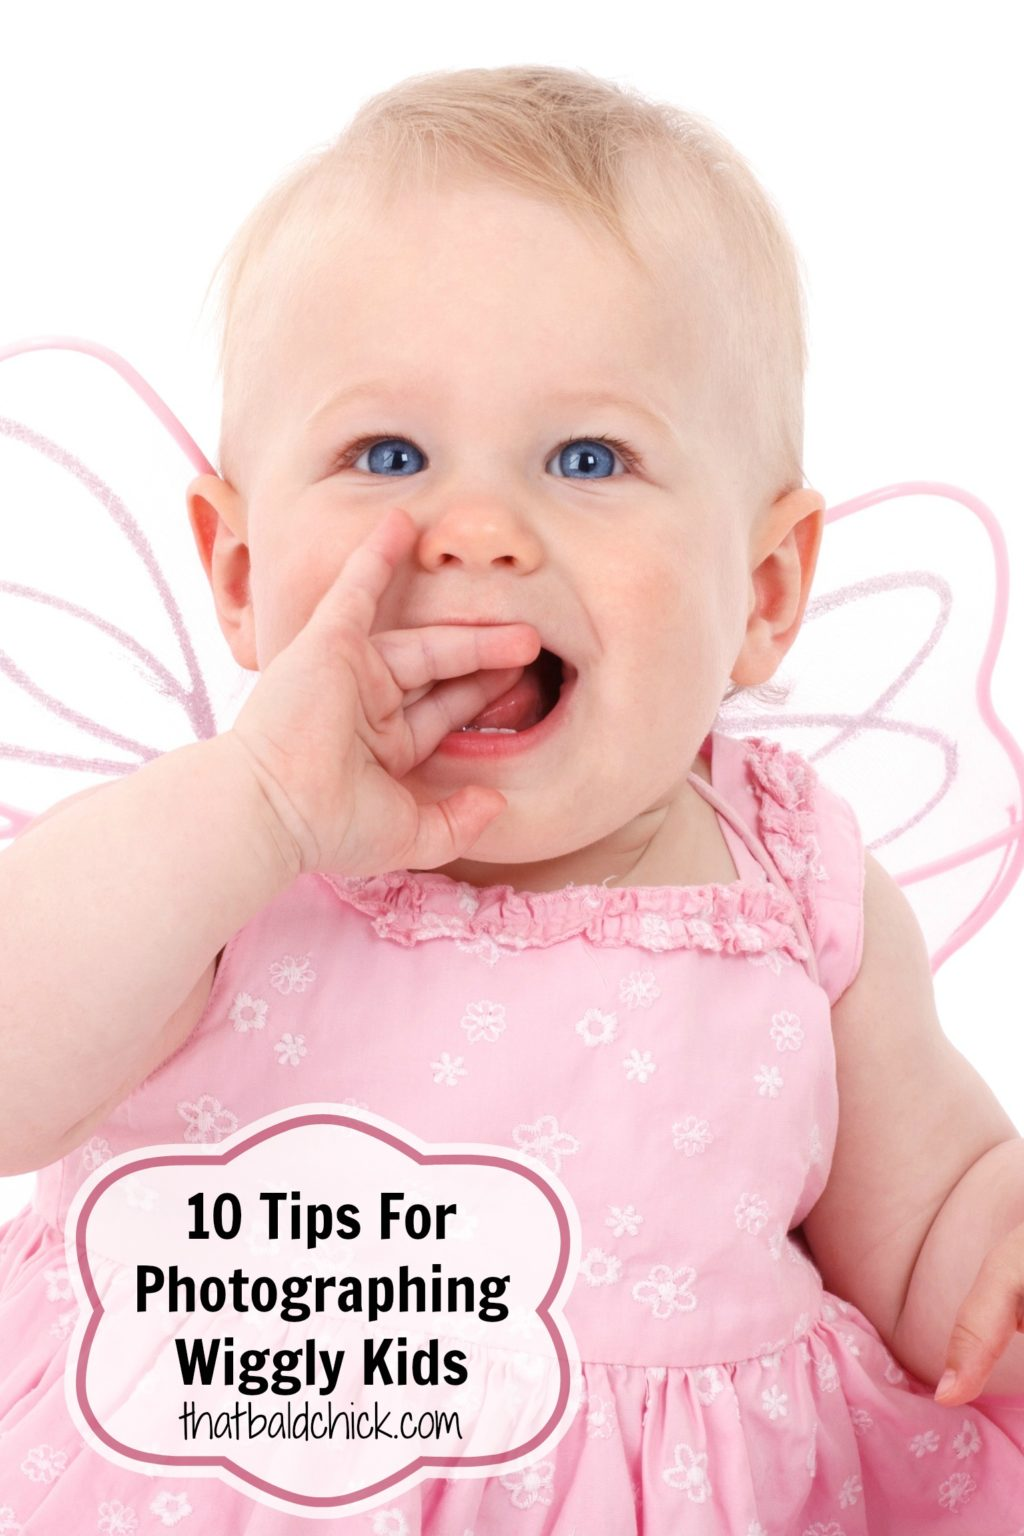 10 Tips For Photographing Wiggly Kids